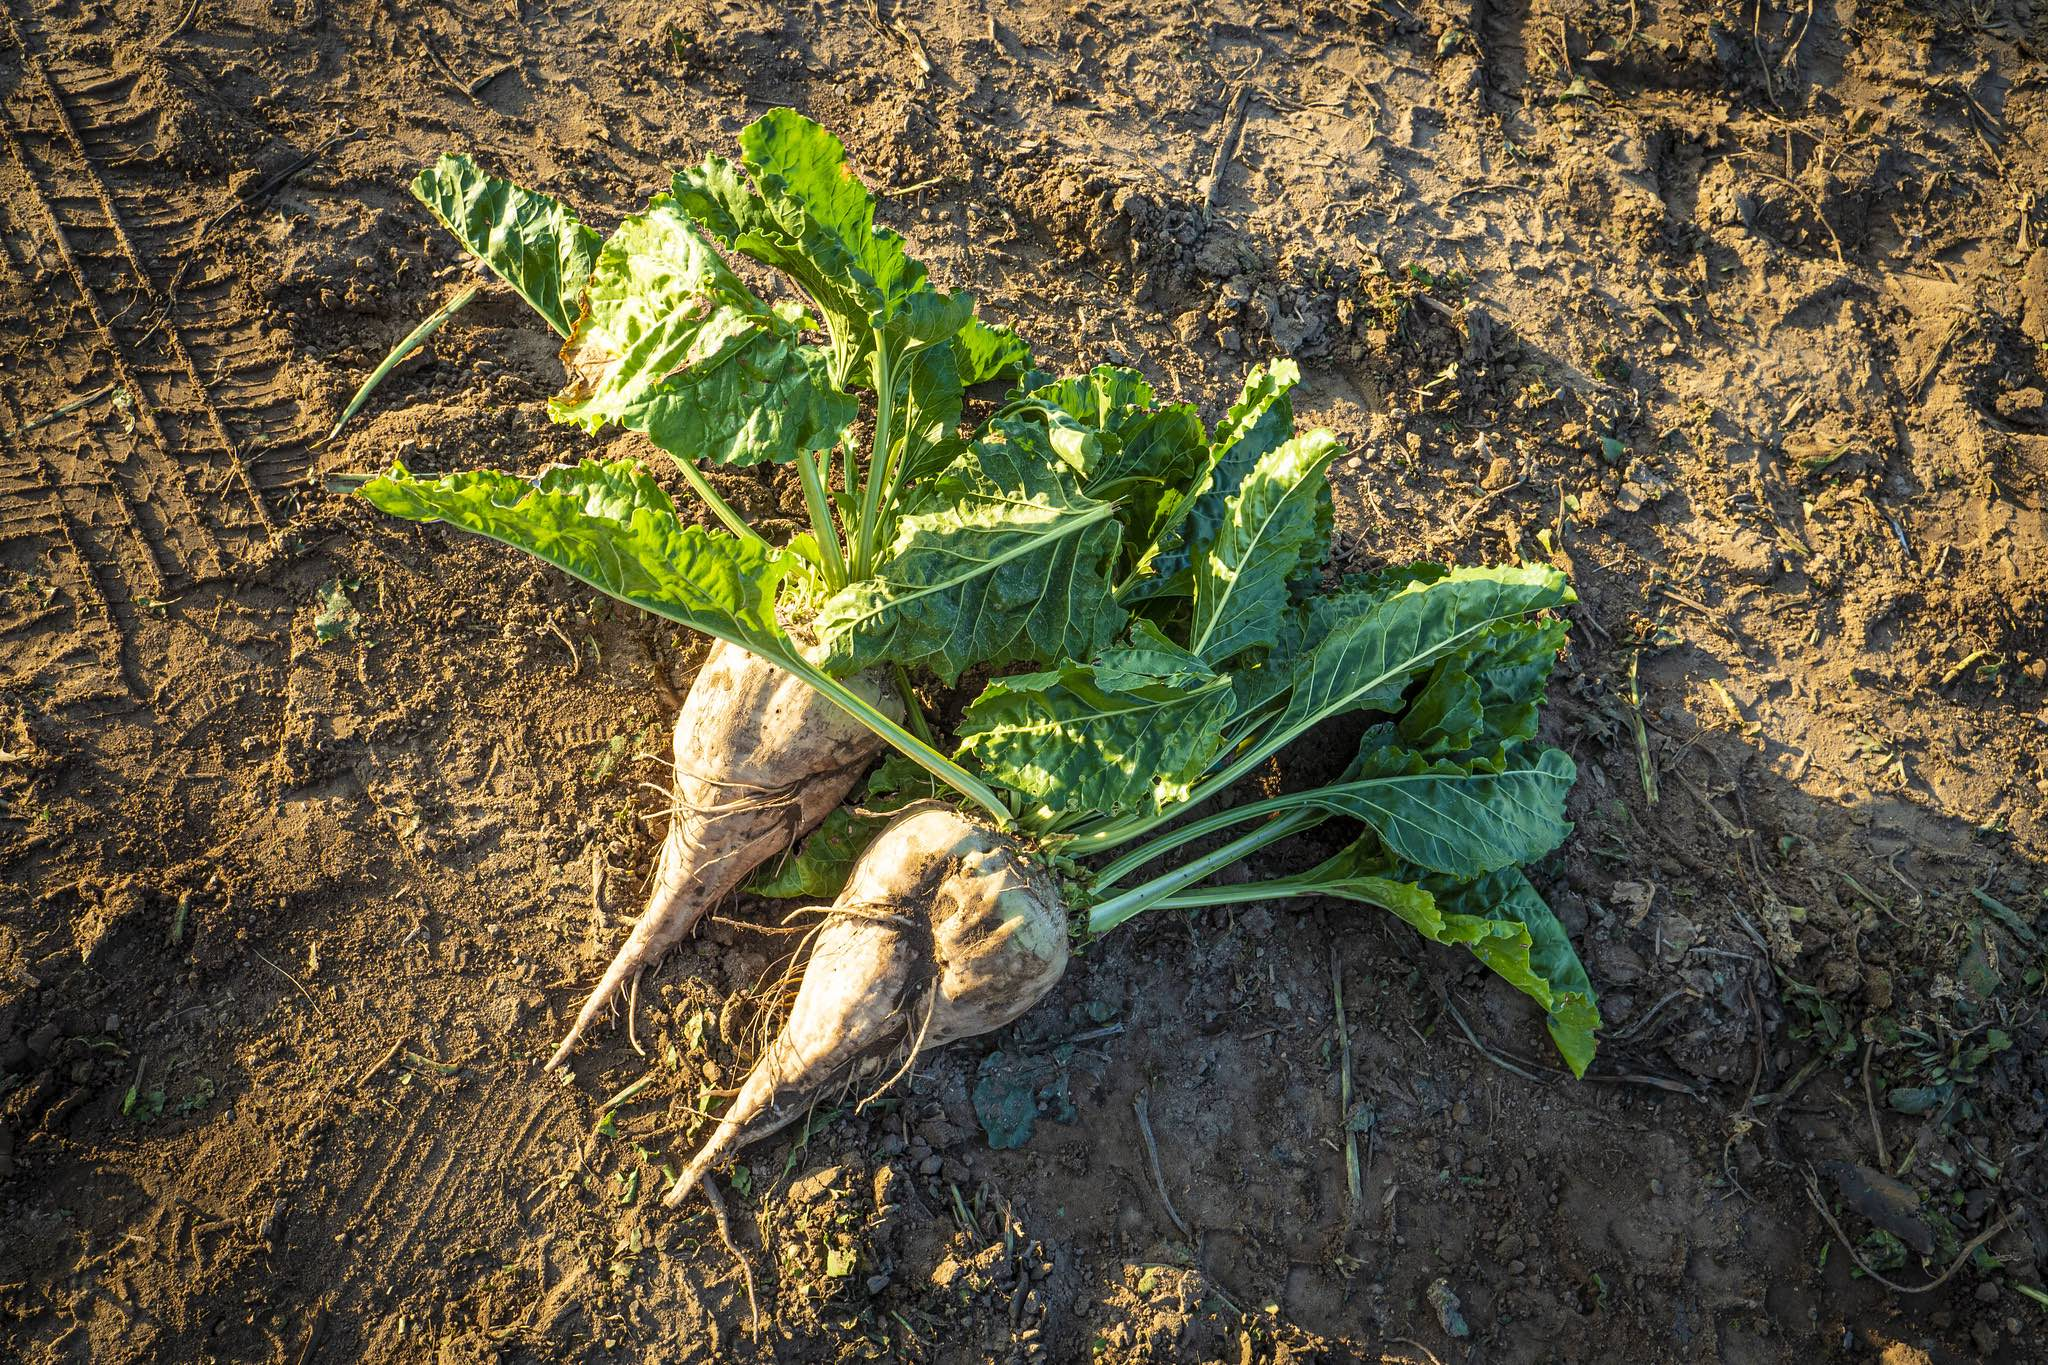 Tim Giago: Learning life's lessons on a sugar beet farm